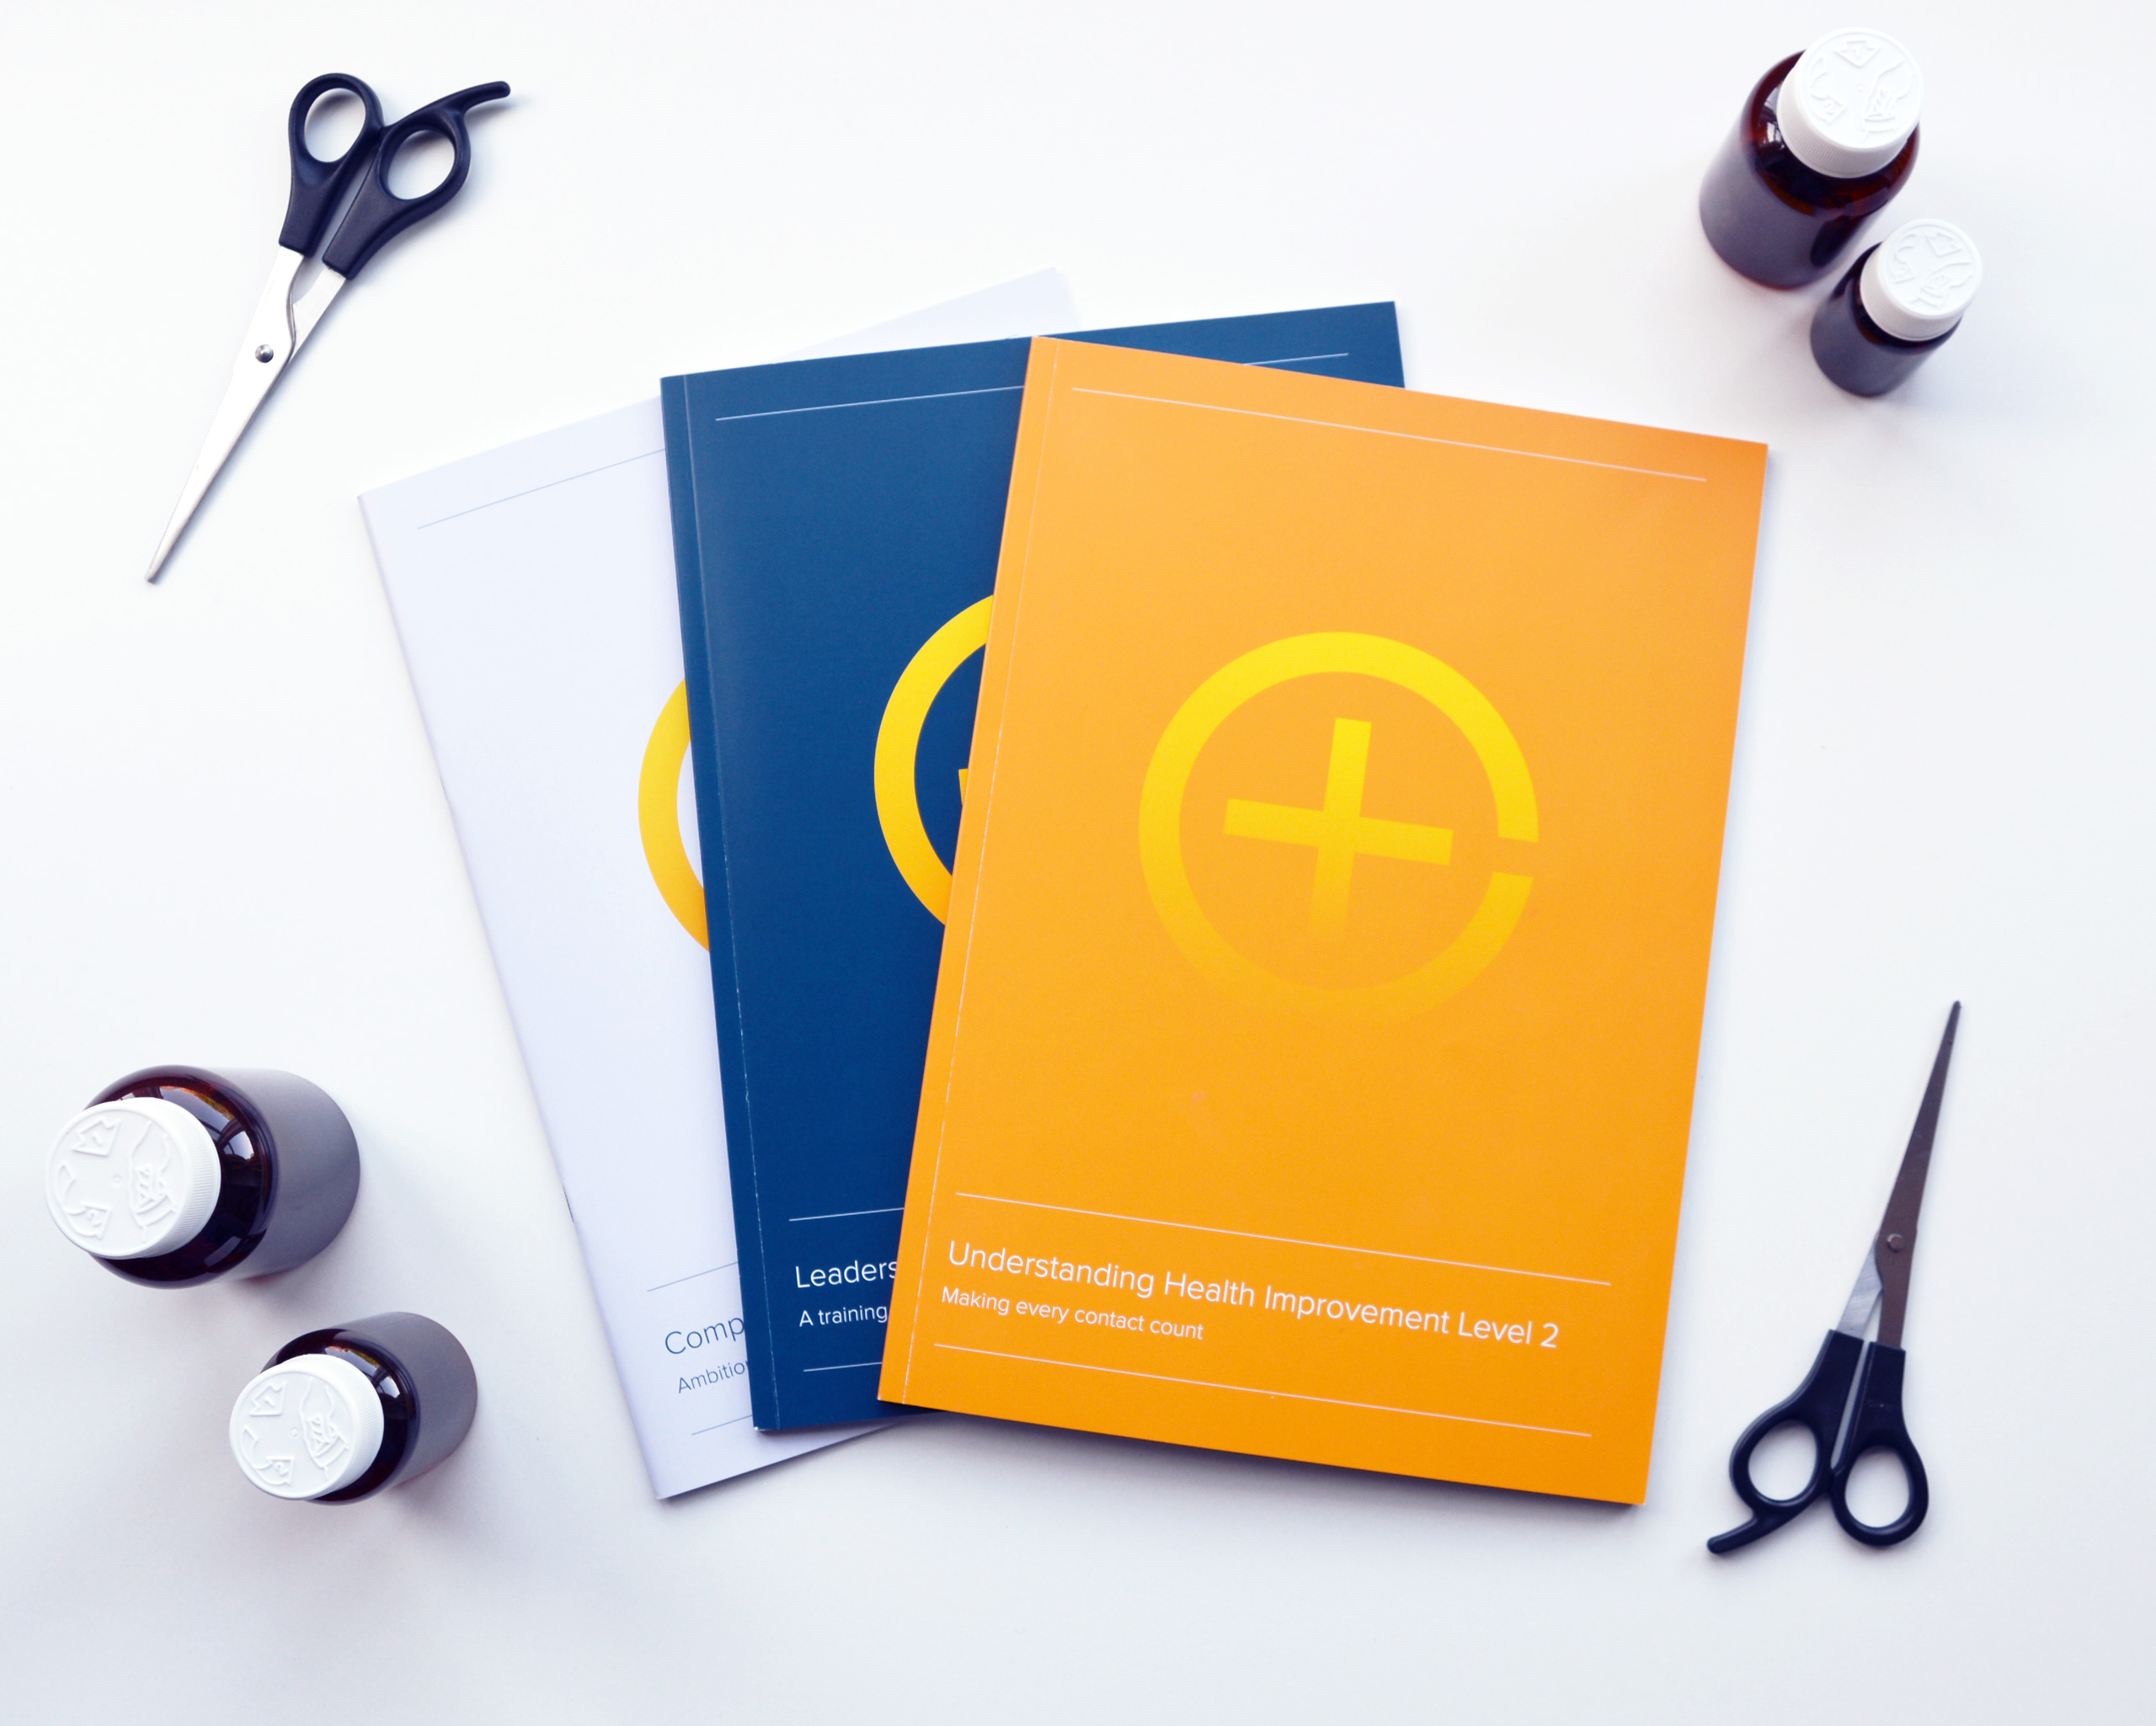 DOSE Design and Marketing Pharmacy Complete Training Workbooks